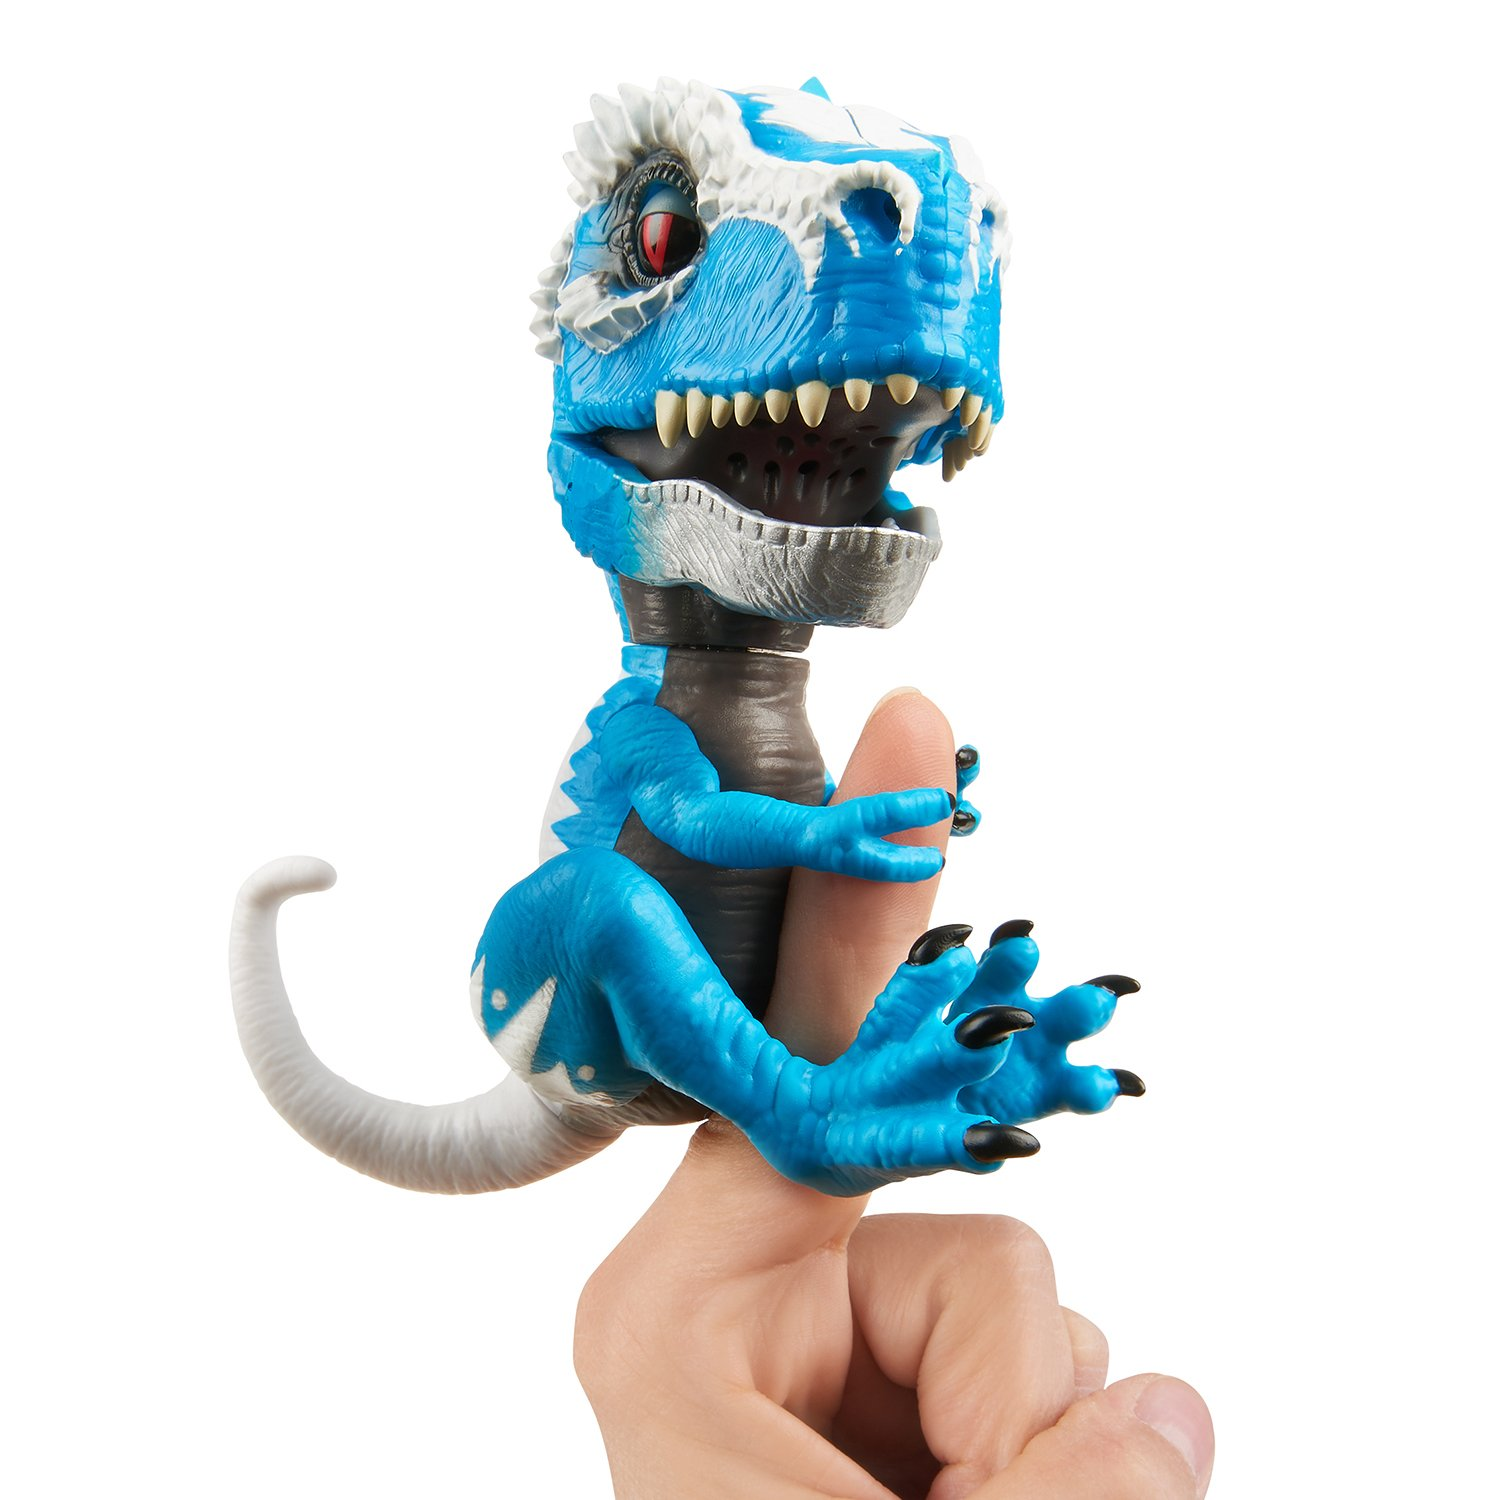 WowWee Untamed T-Rex by Fingerlings Ironjaw (Blue) -Interactive Collectible Dinosaur by WowWee (Image #1)